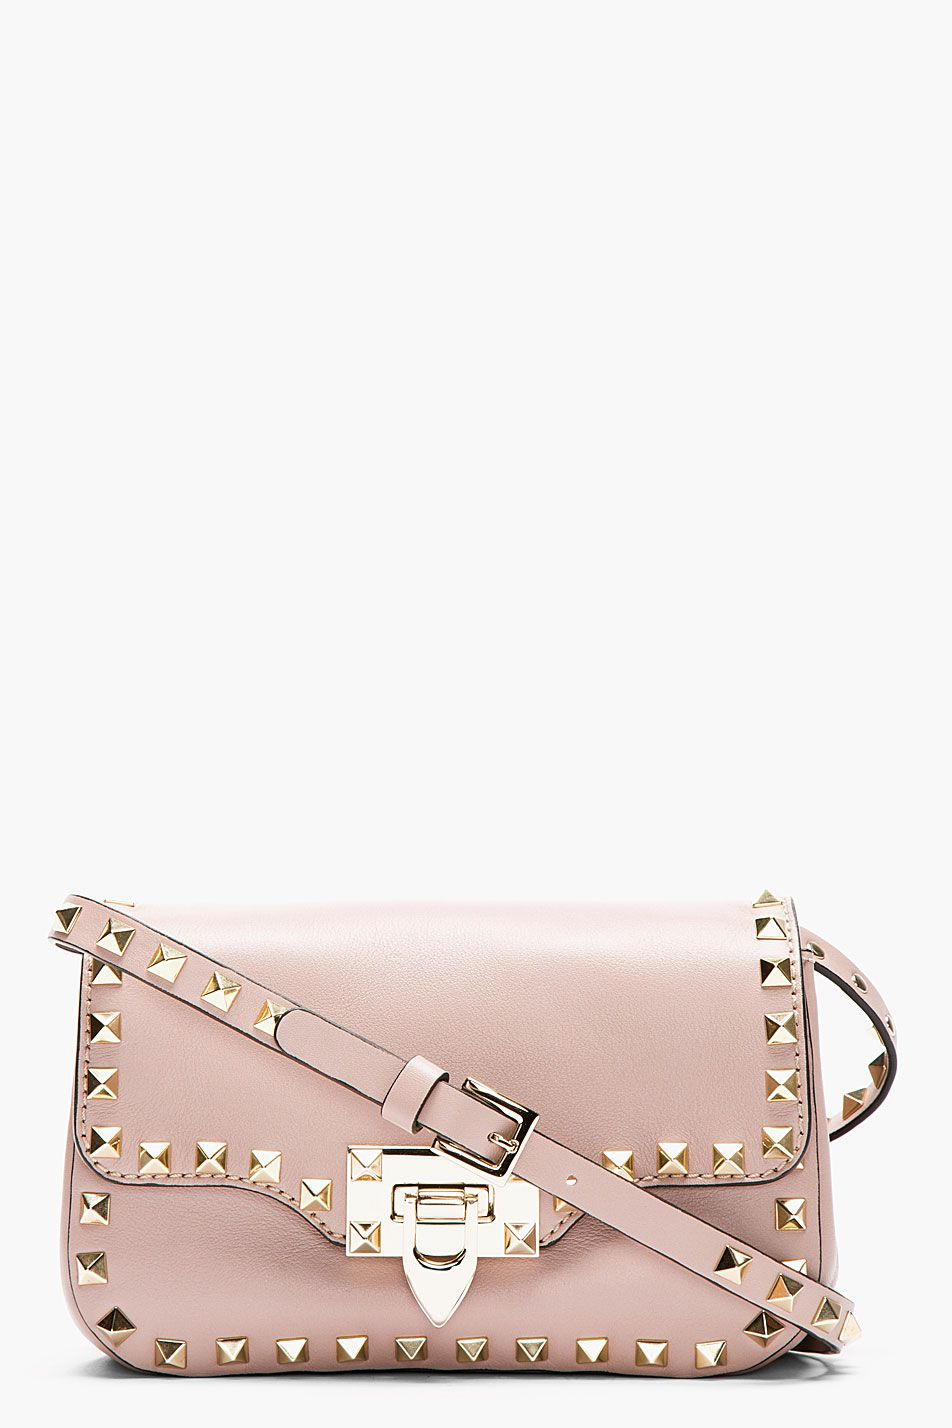 e650062d9ca Valentino Nude Leather Rockstud Shoulder Bag | Bags in 2019 | Bags ...